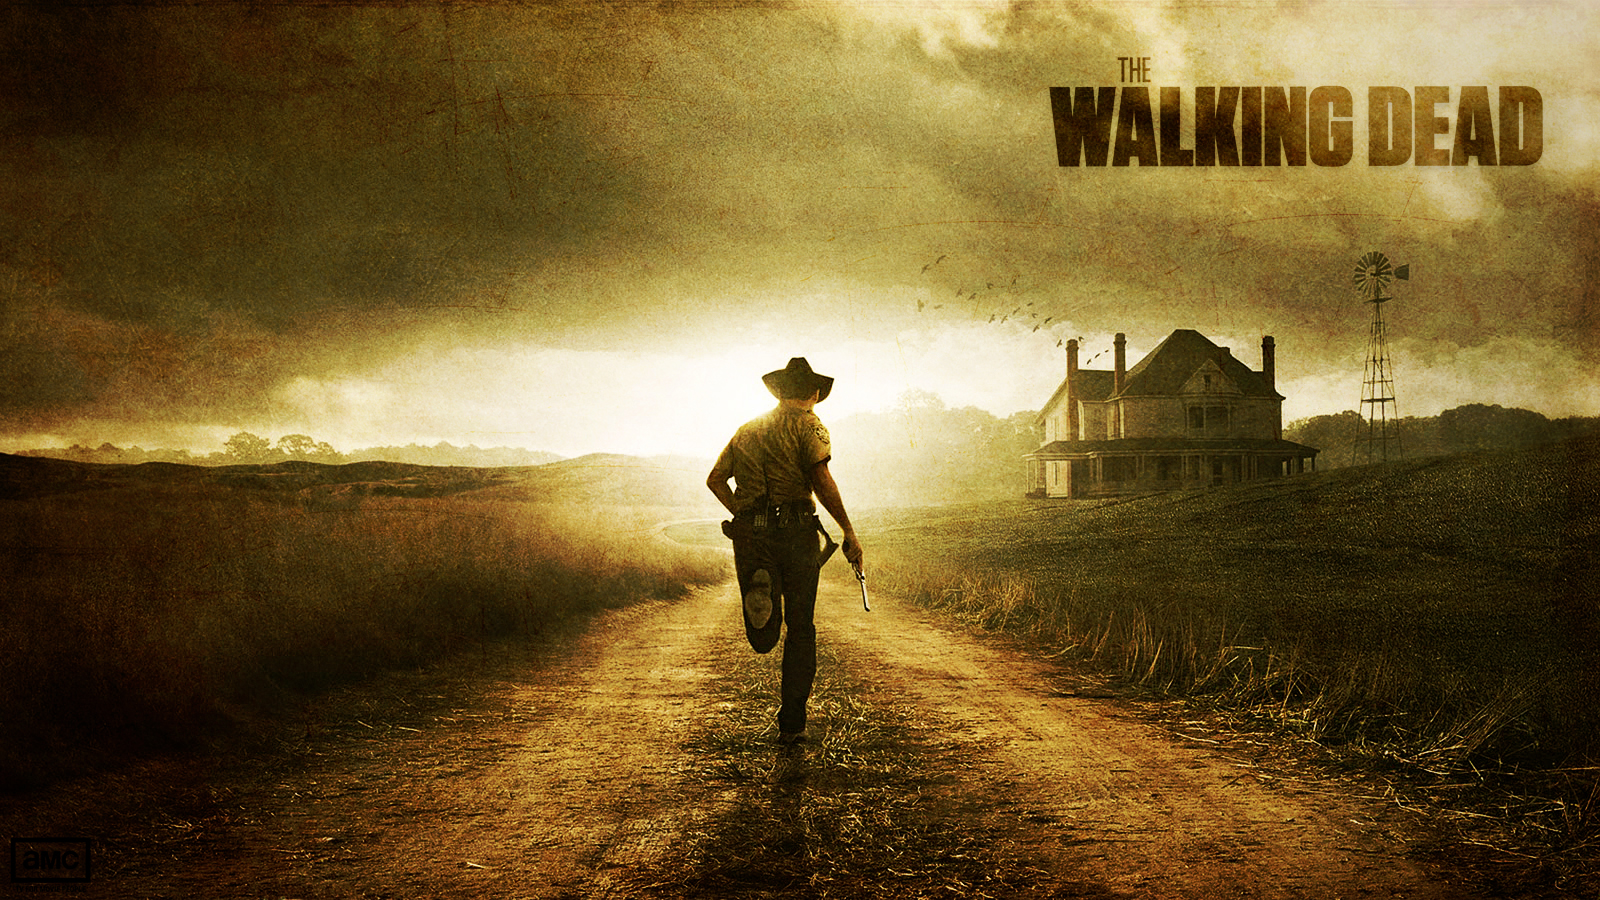 The Walking Dead Wallpaper Sf Wallpaper